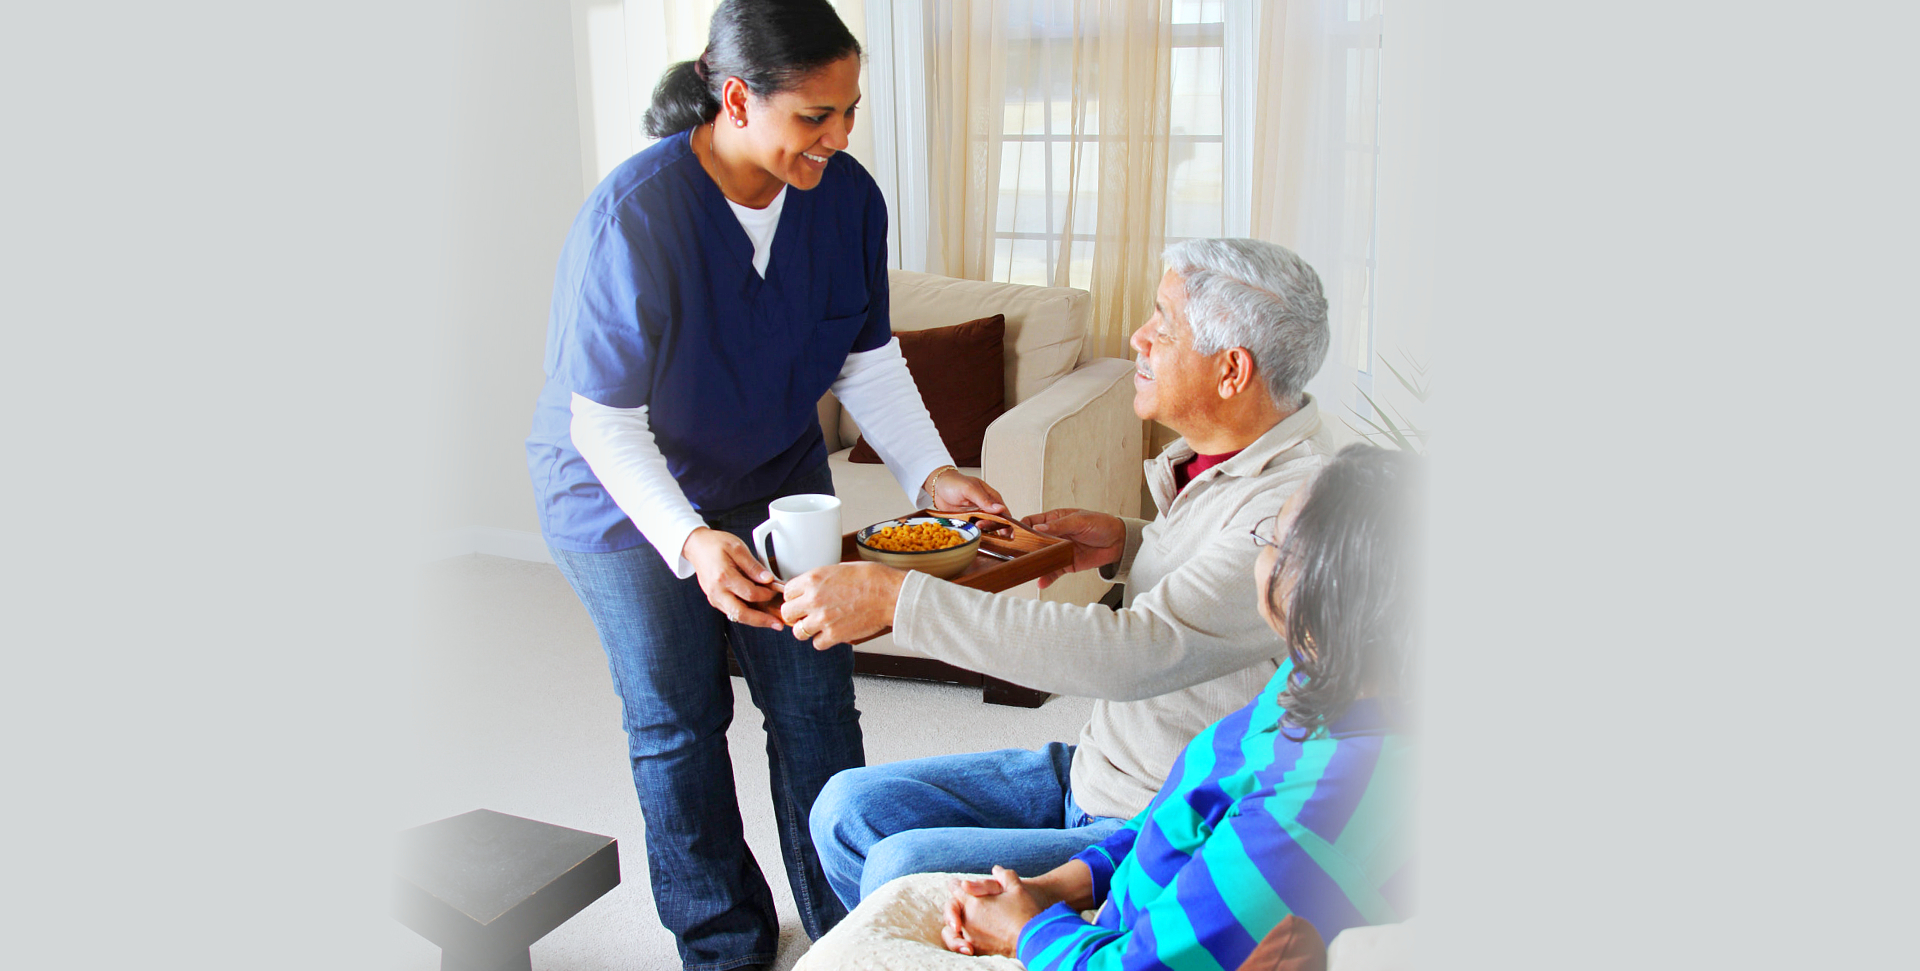 woman giving food to a senior